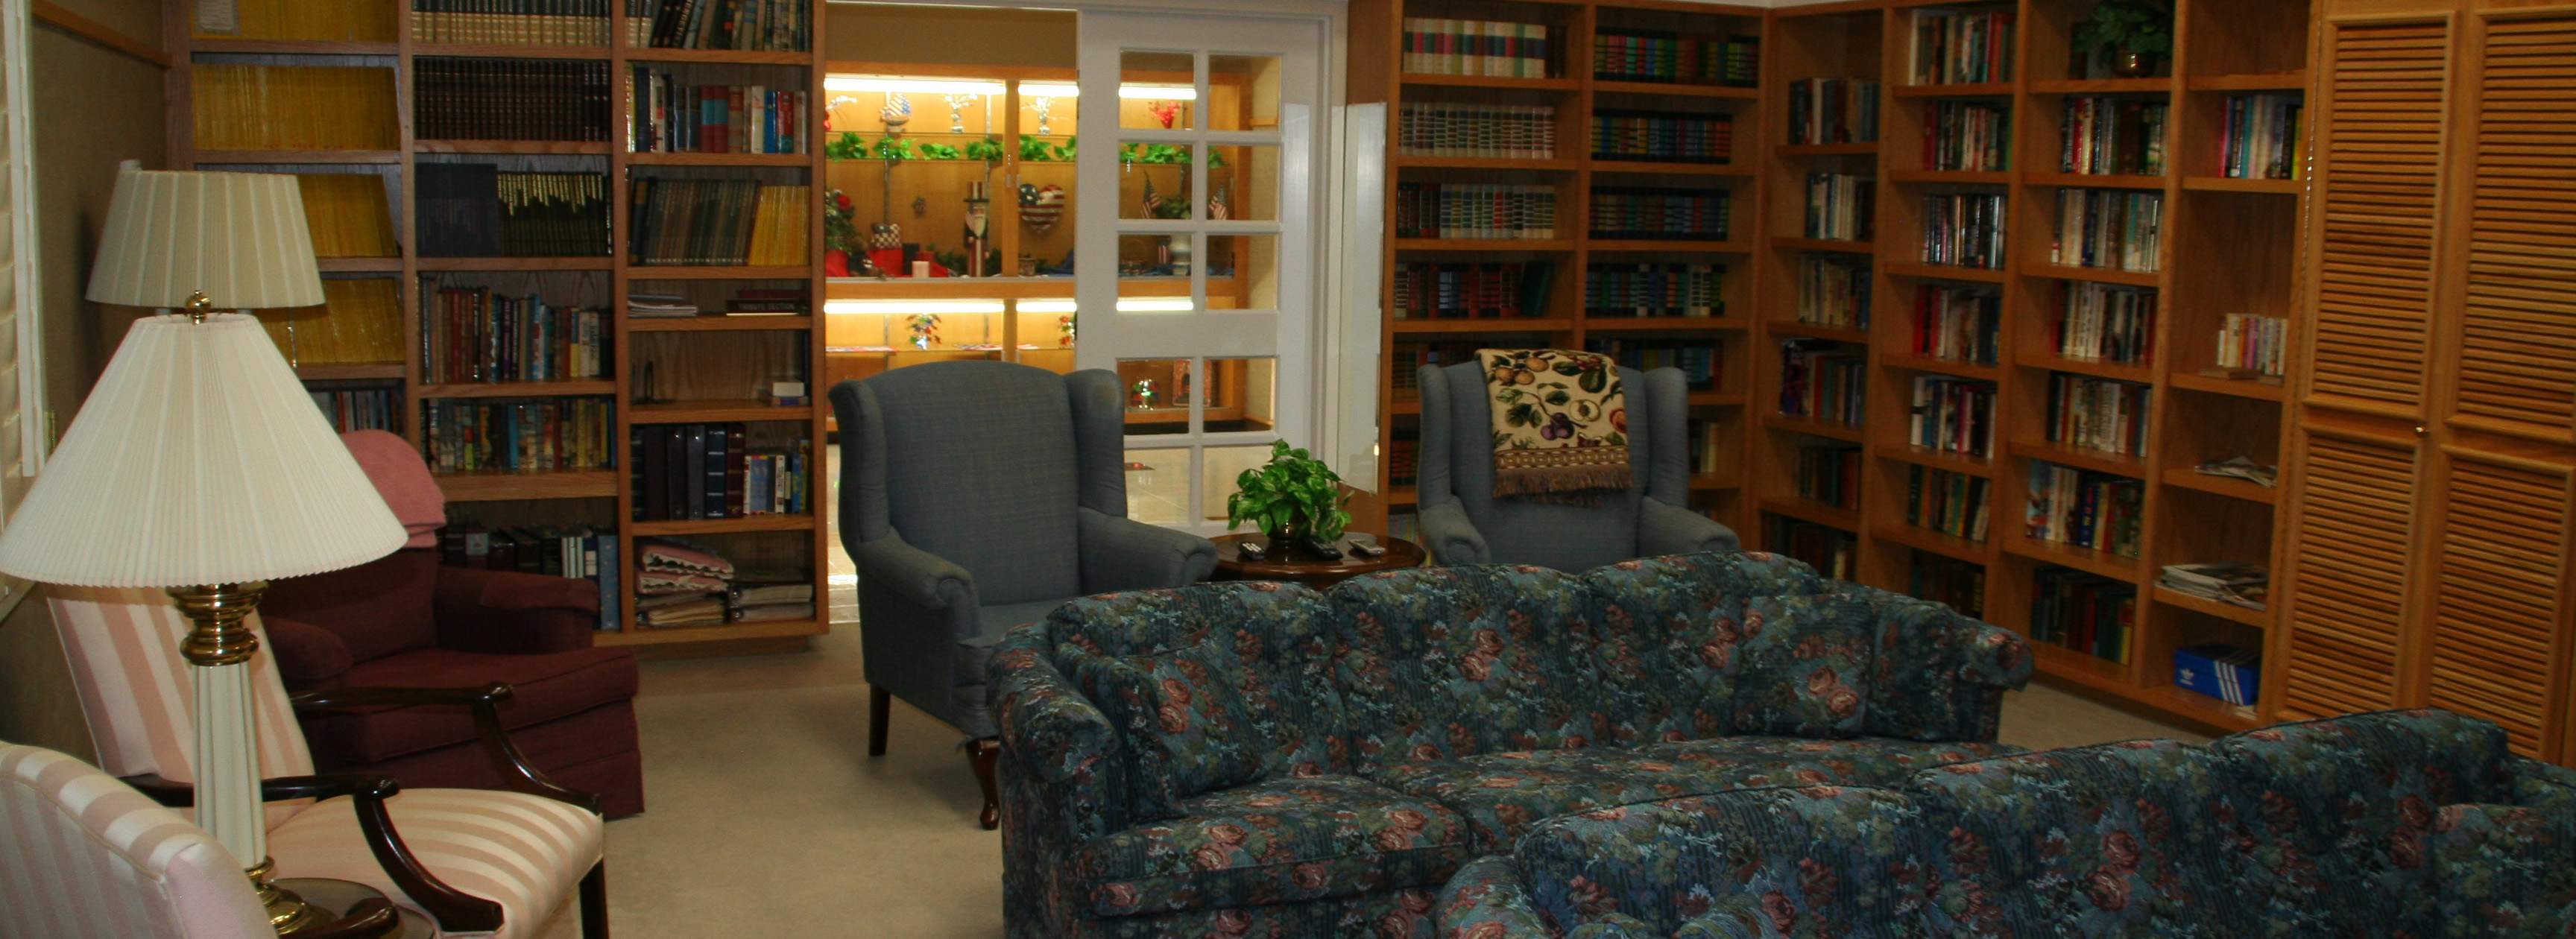 a picture of one of the sitting areas in the Pioneer Center. The area includes bookcases, a couch, and a couple of chairs